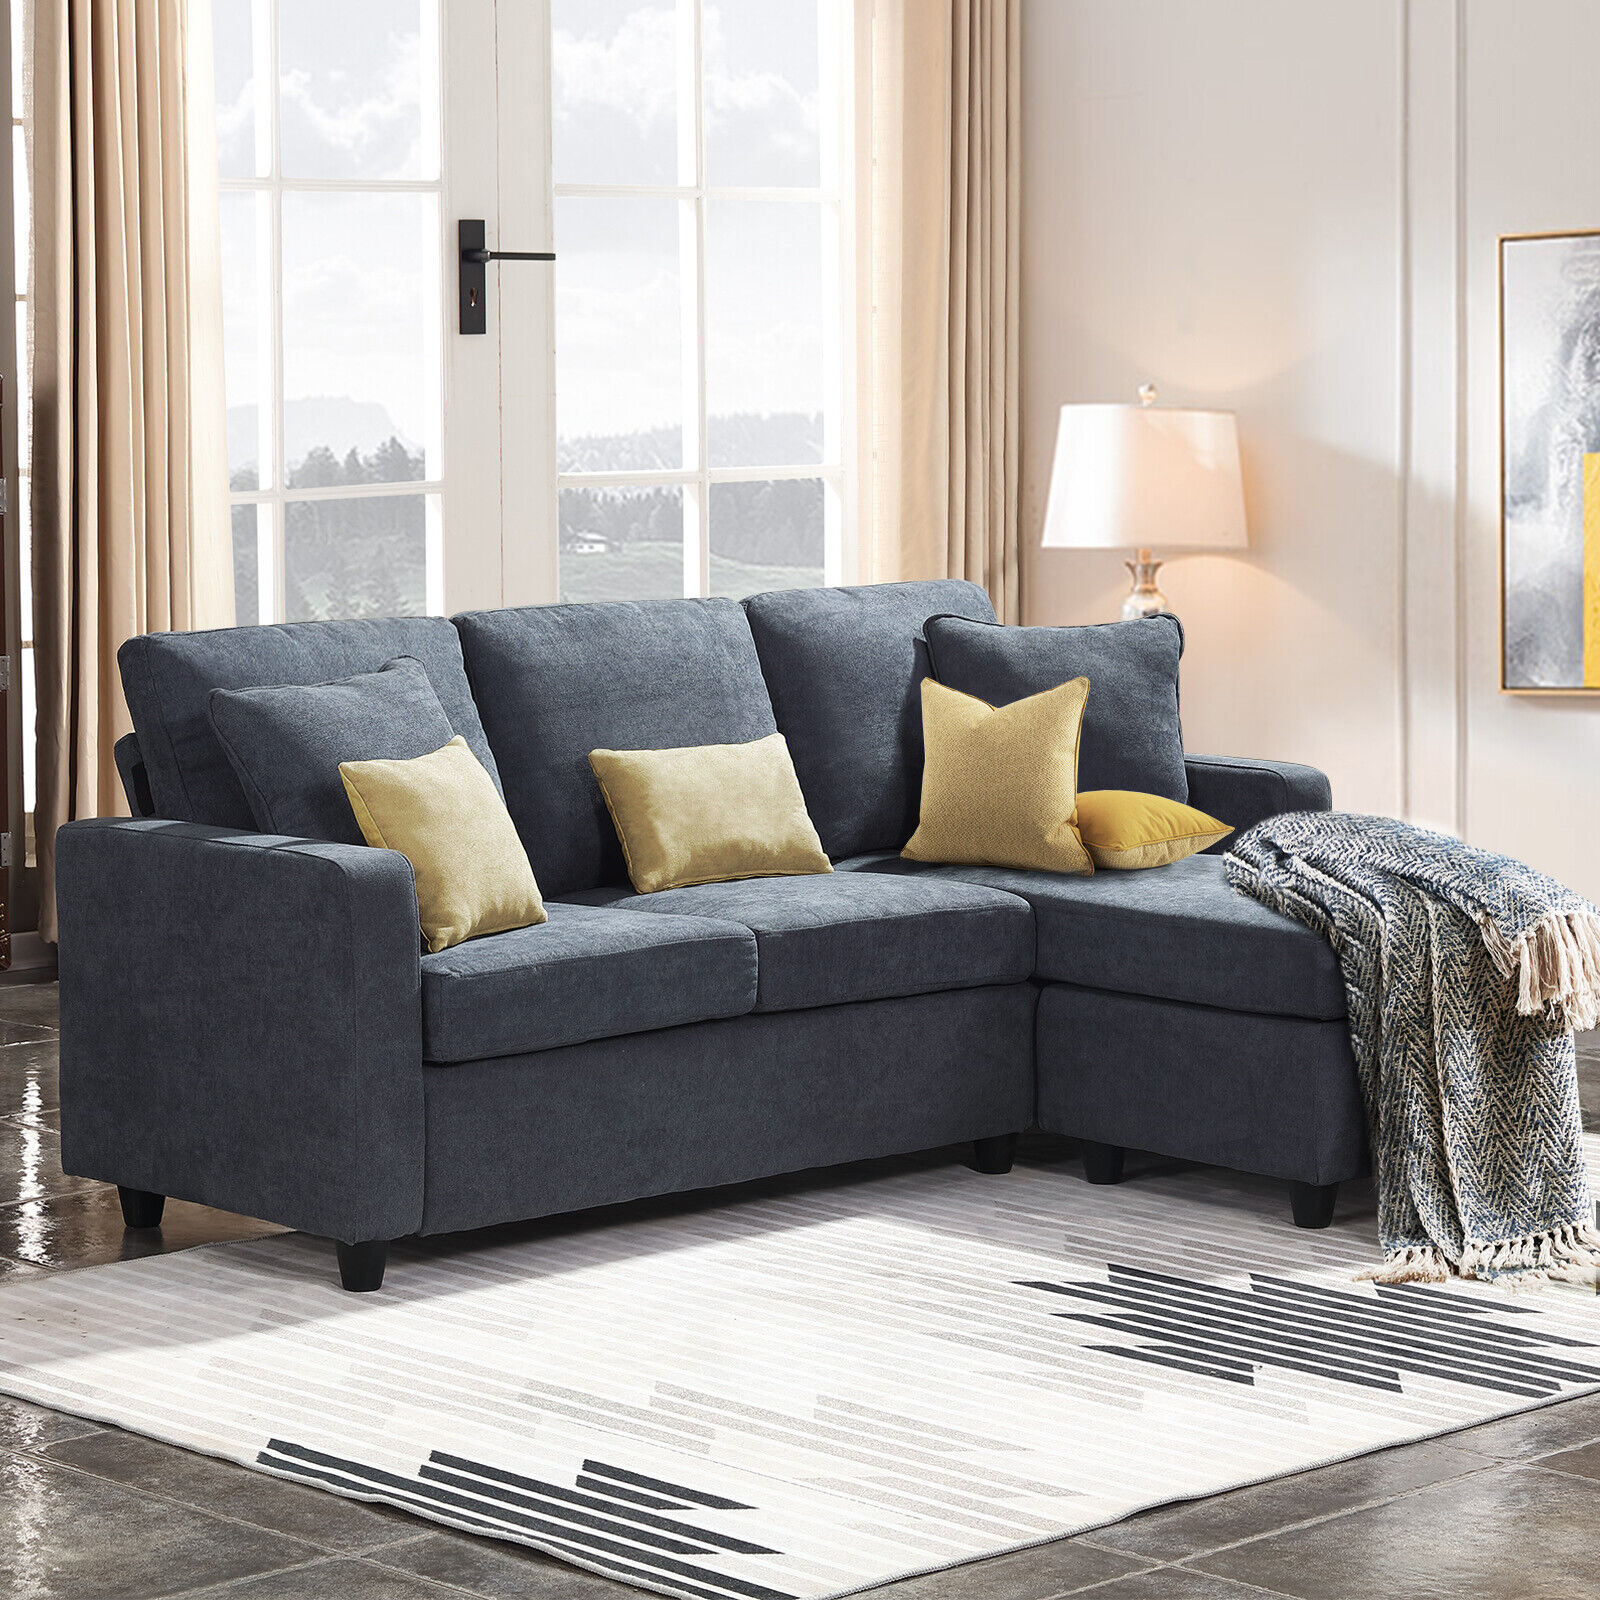 dark grey sectional sofa l shaped couch w reversible chaise for small space